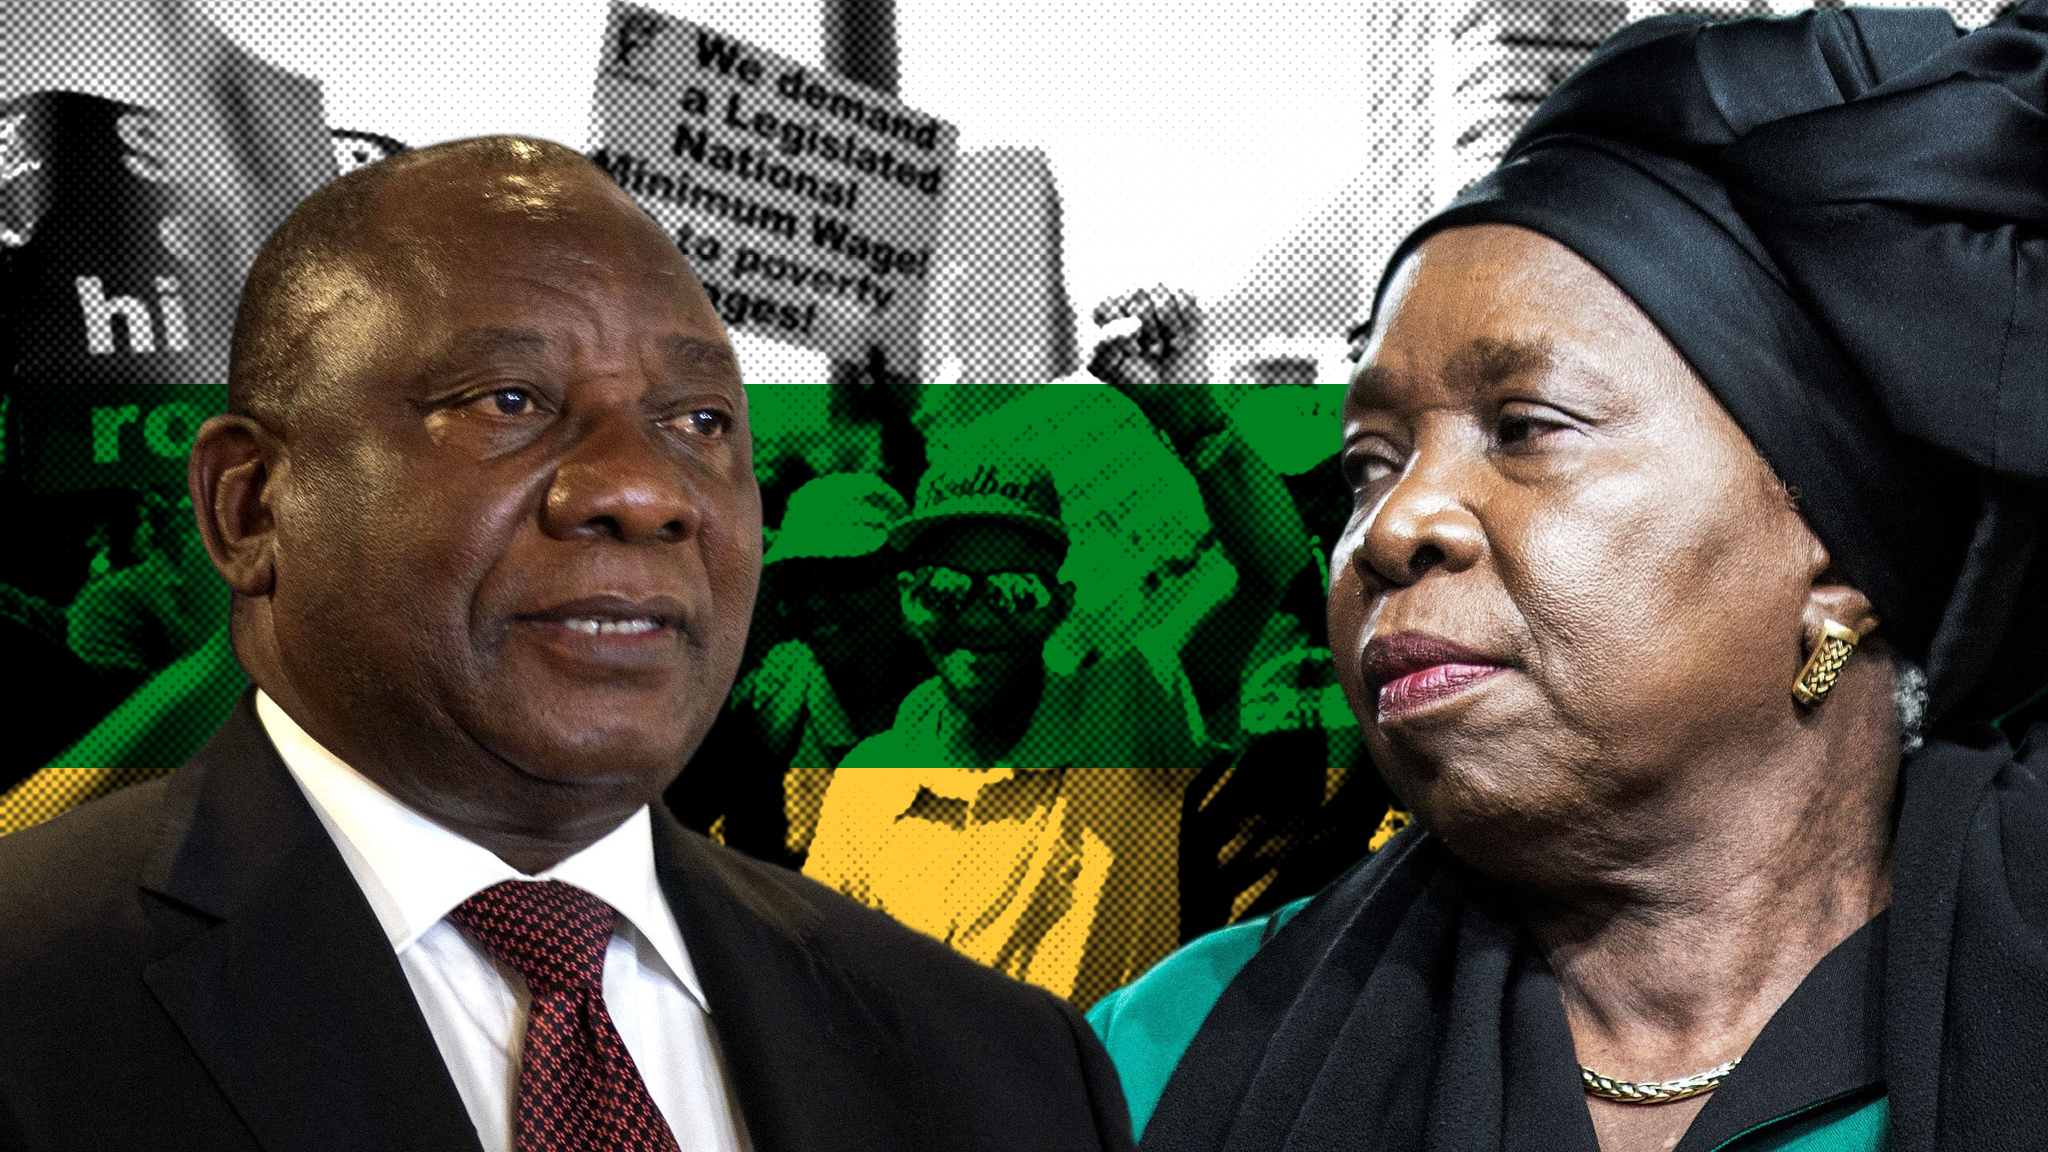 The Zuma years: the fall from grace of South Africa's ANC